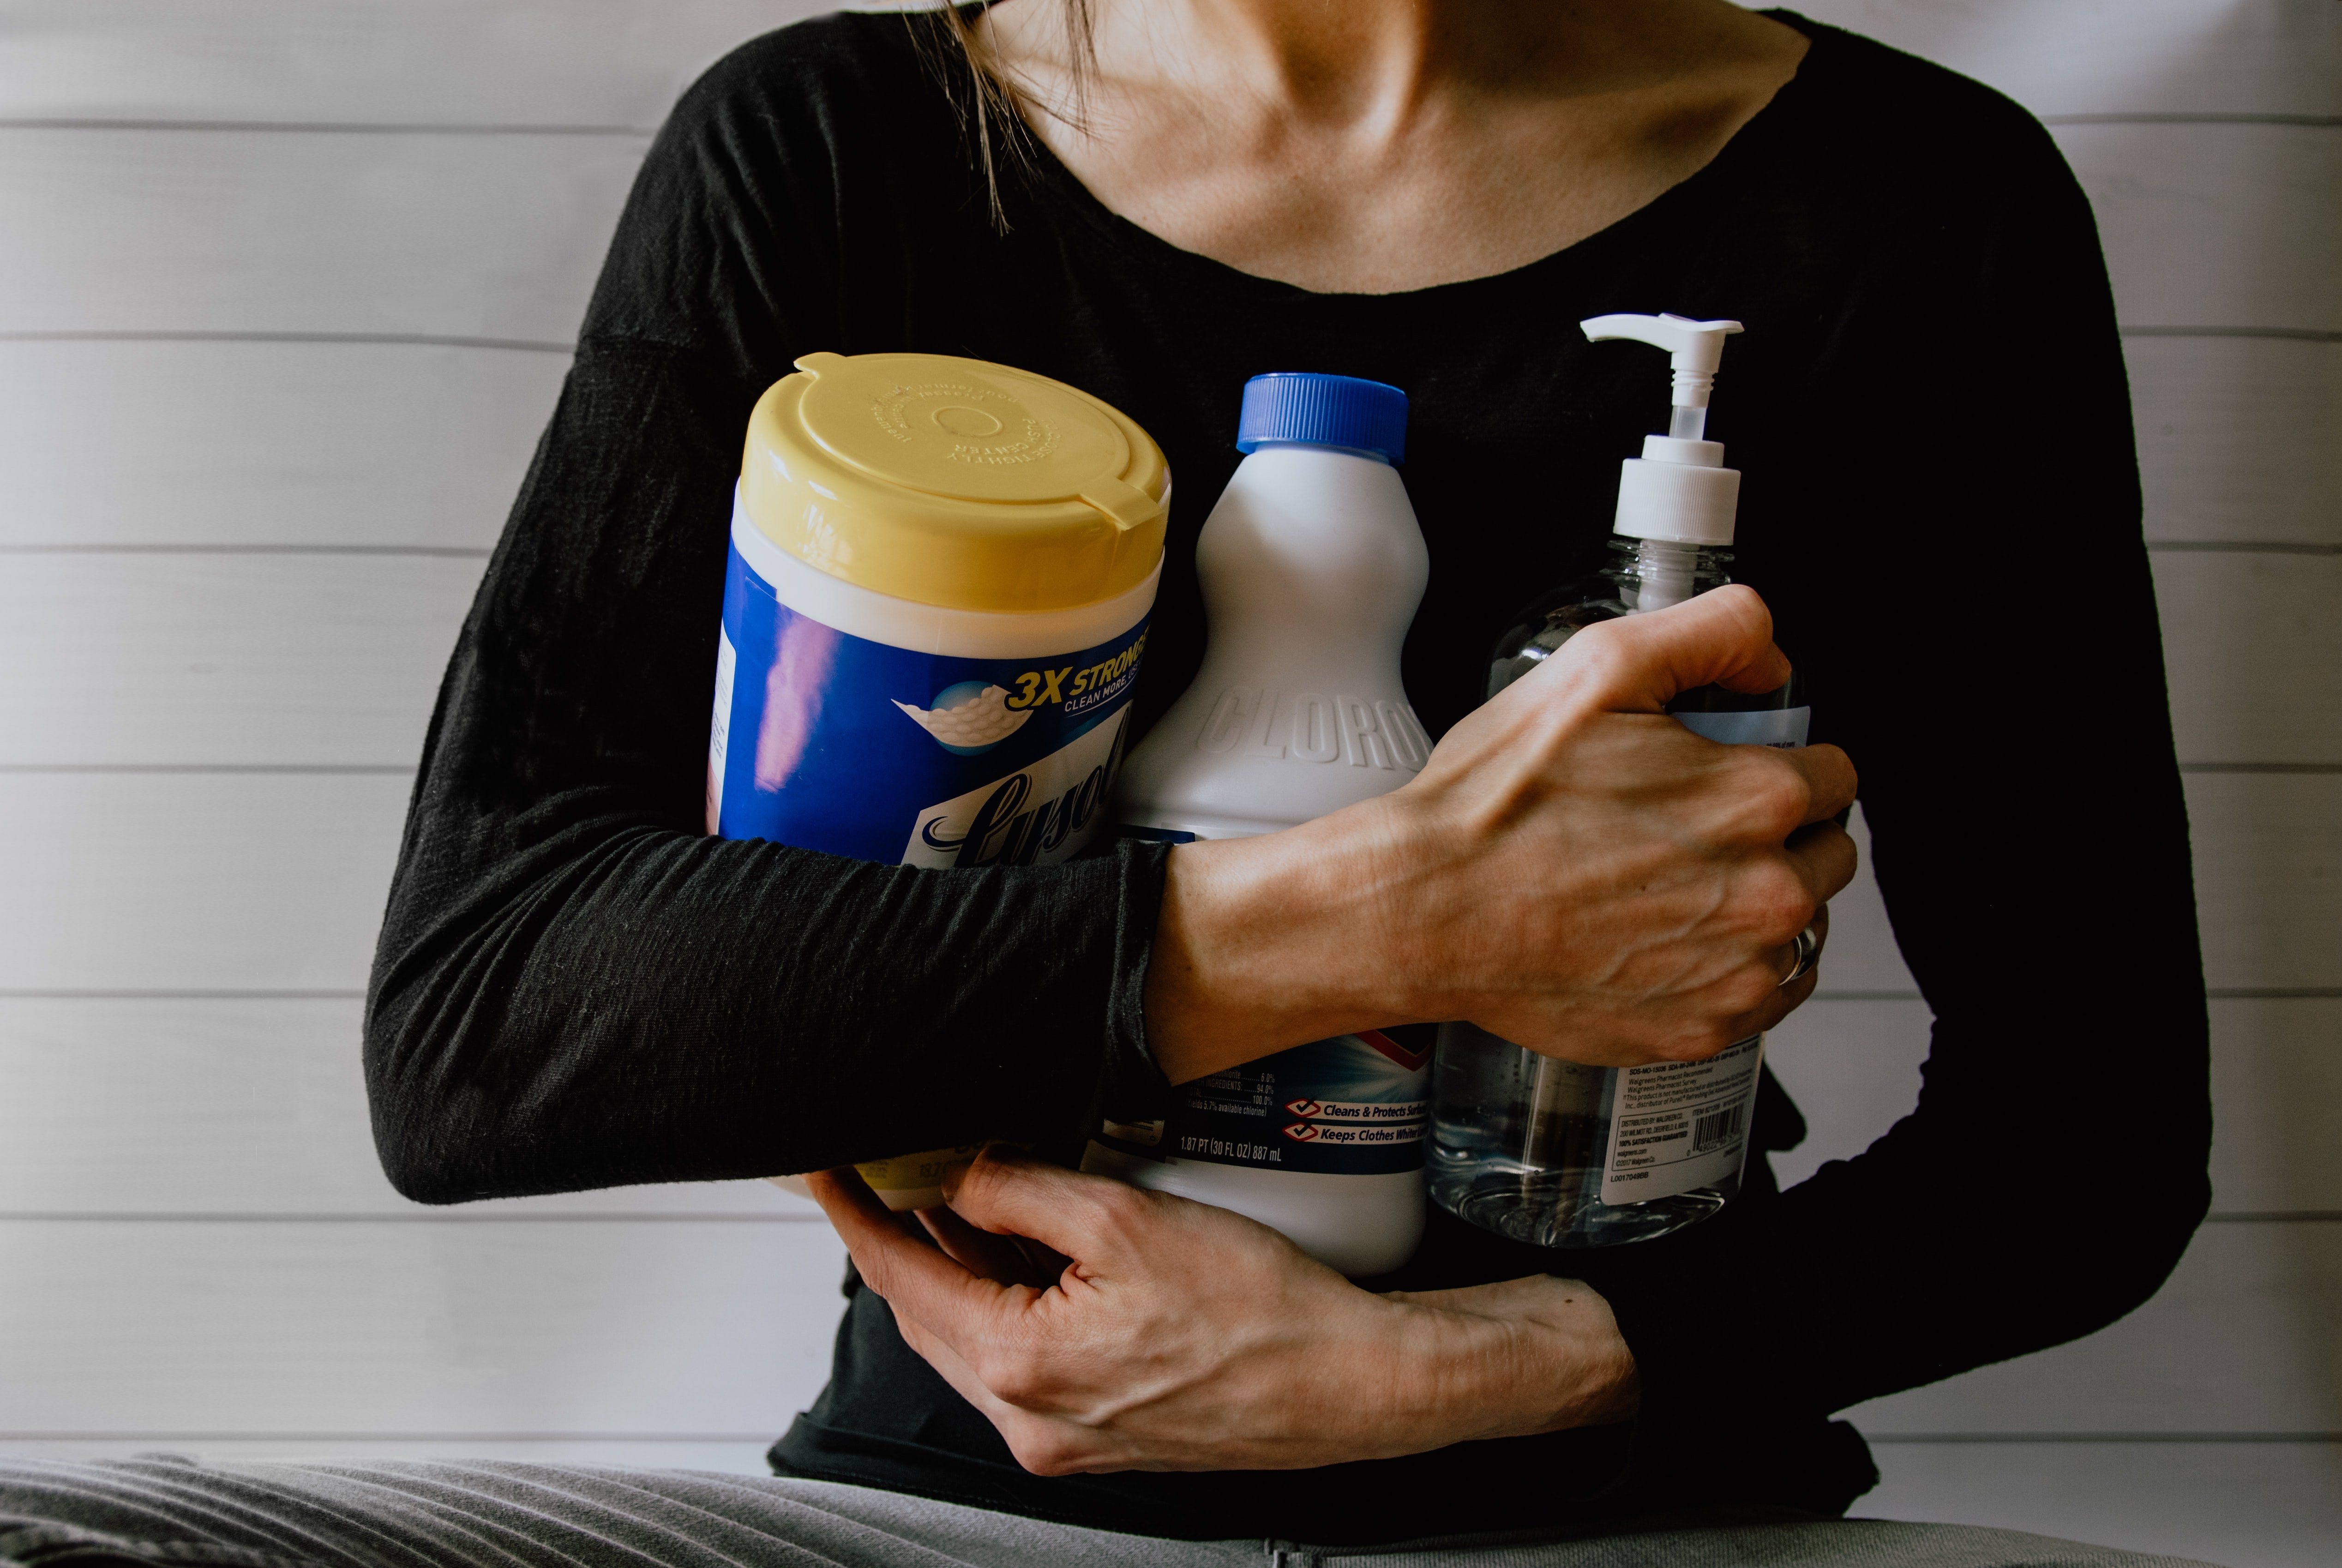 woman holding hydrogen peroxide to clean the bathroom in a shared house